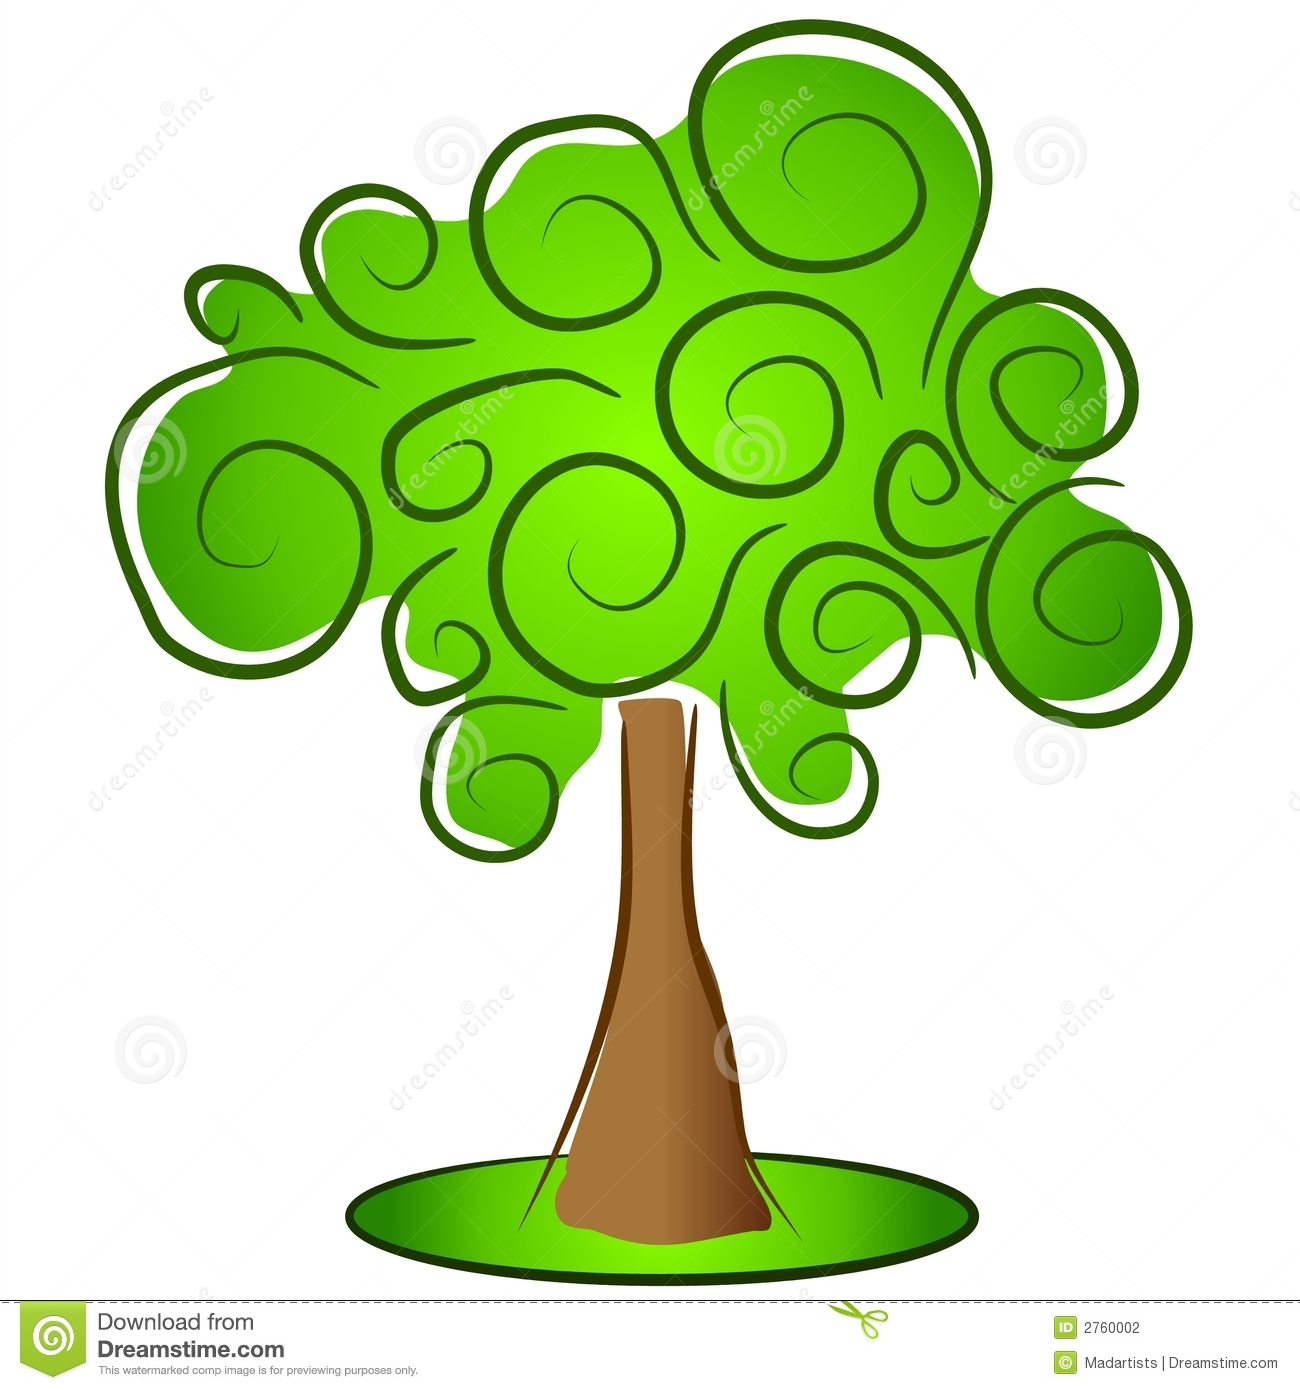 Arbol clipart free freeuse stock Arbol clipart 3 » Clipart Station freeuse stock